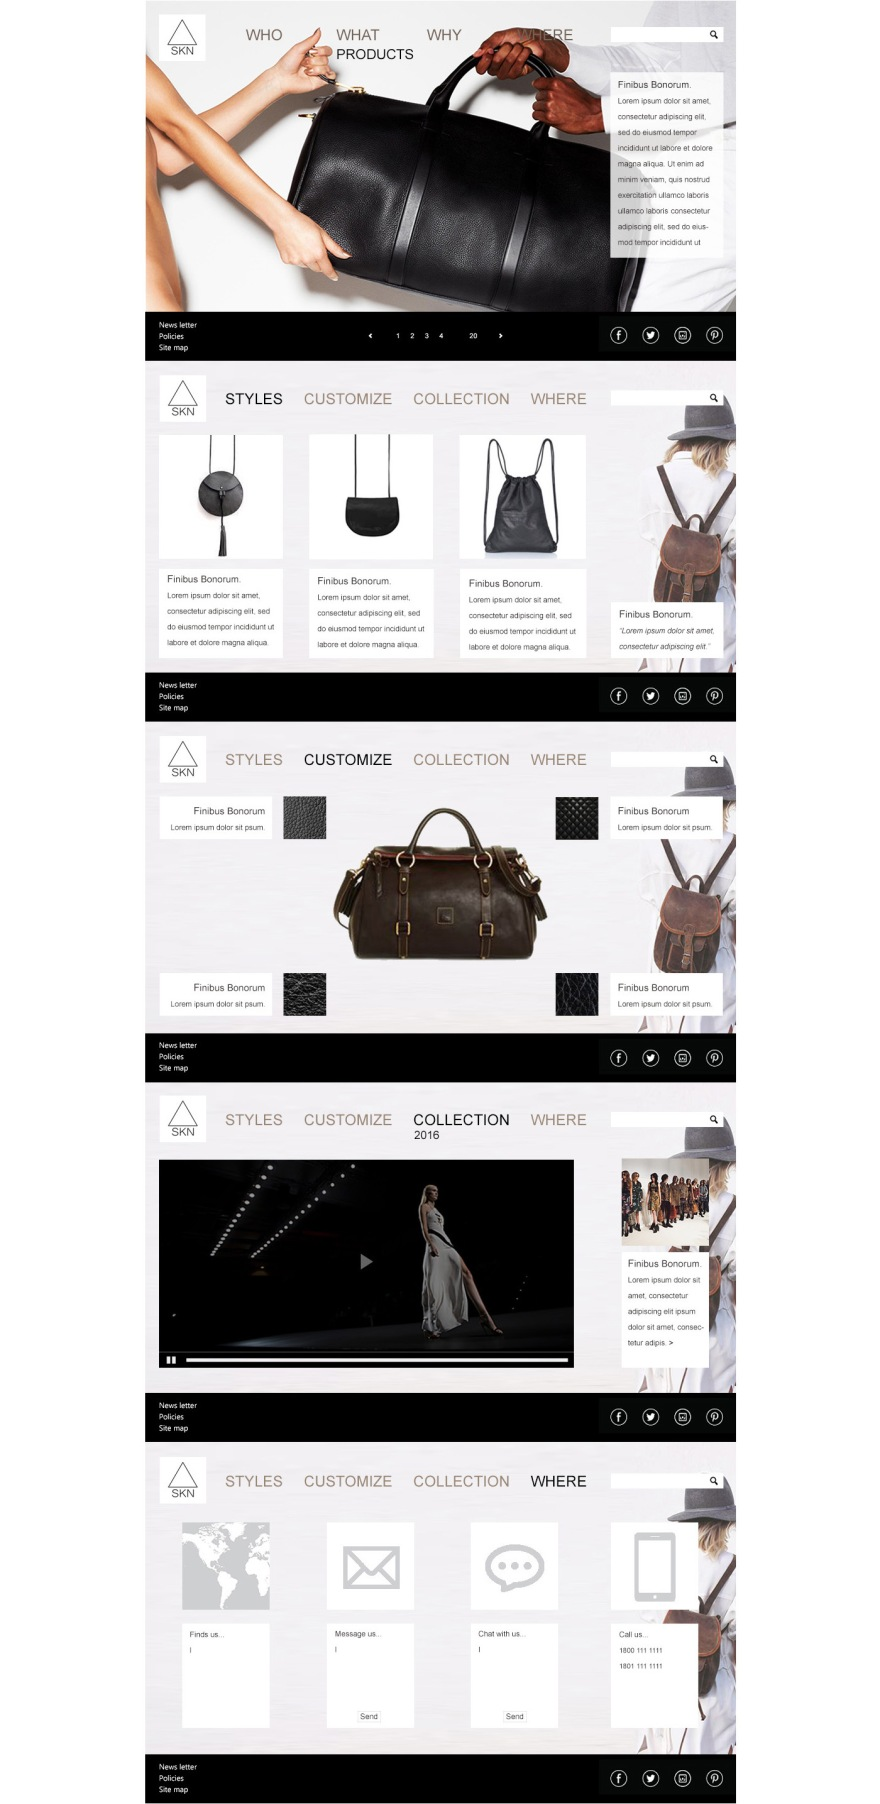 layouttemplate-modify-2-images-solo